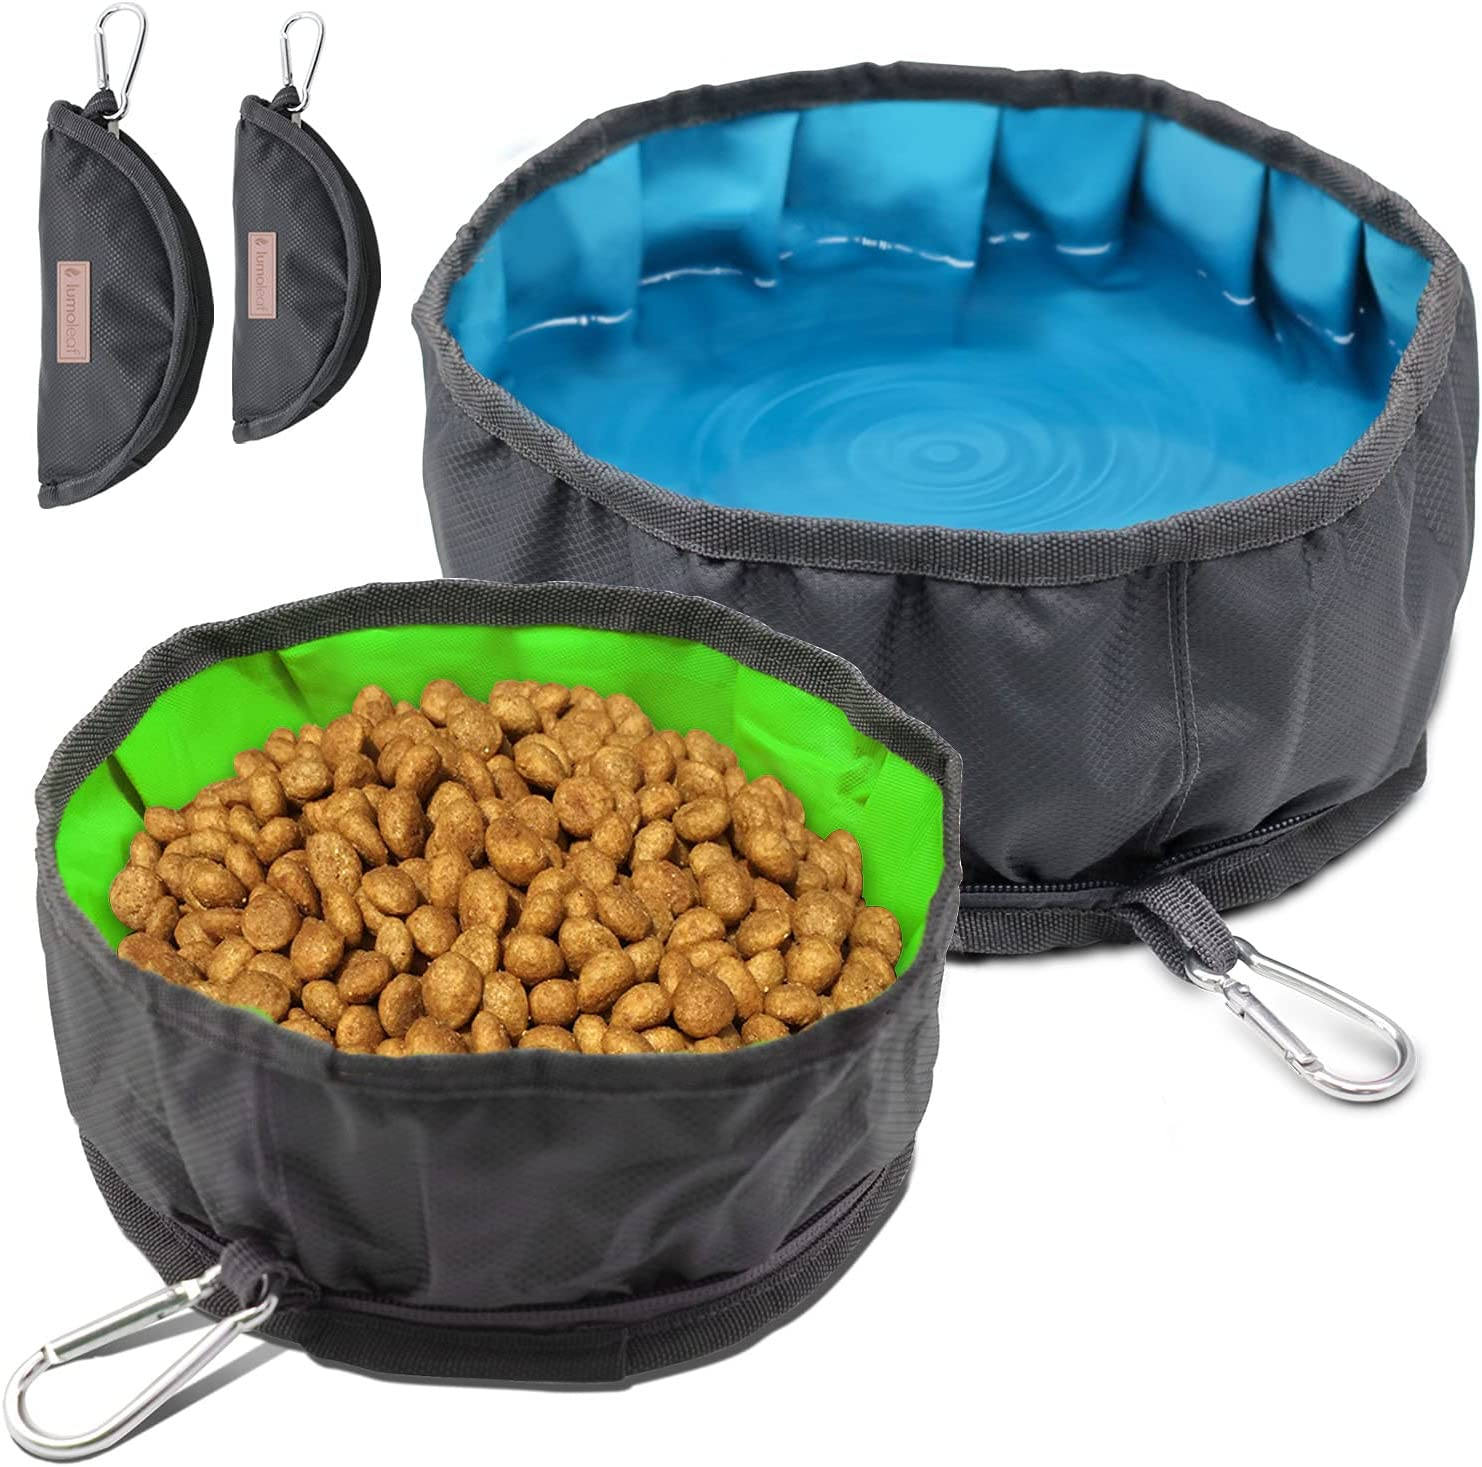 LumoLeaf Collapsible Dog Bowls, Large Lightweight Foldable Travel Bowl, Portable Water and Food Bowls for Pets Dogs Cats with Zipper.( (Set of 2 (Blue 10 Cups + Green 8 Cups)))